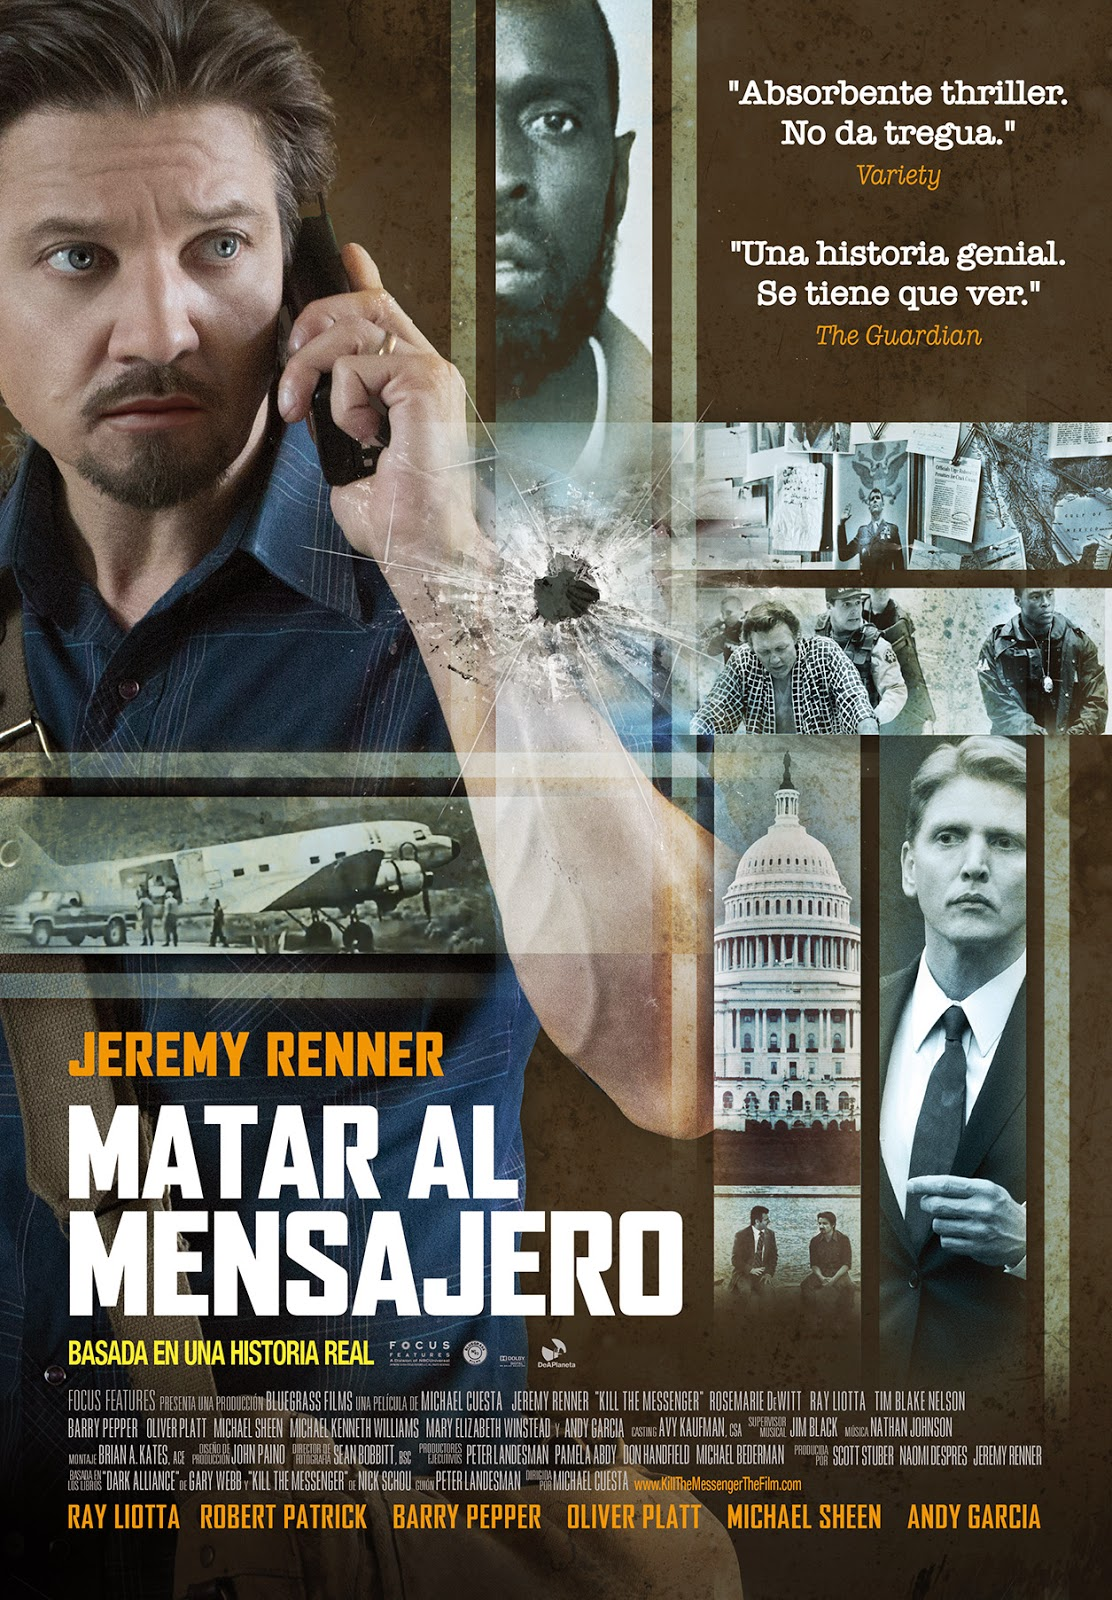 Matar Al Mensajero: Kill the Messenger (2014)